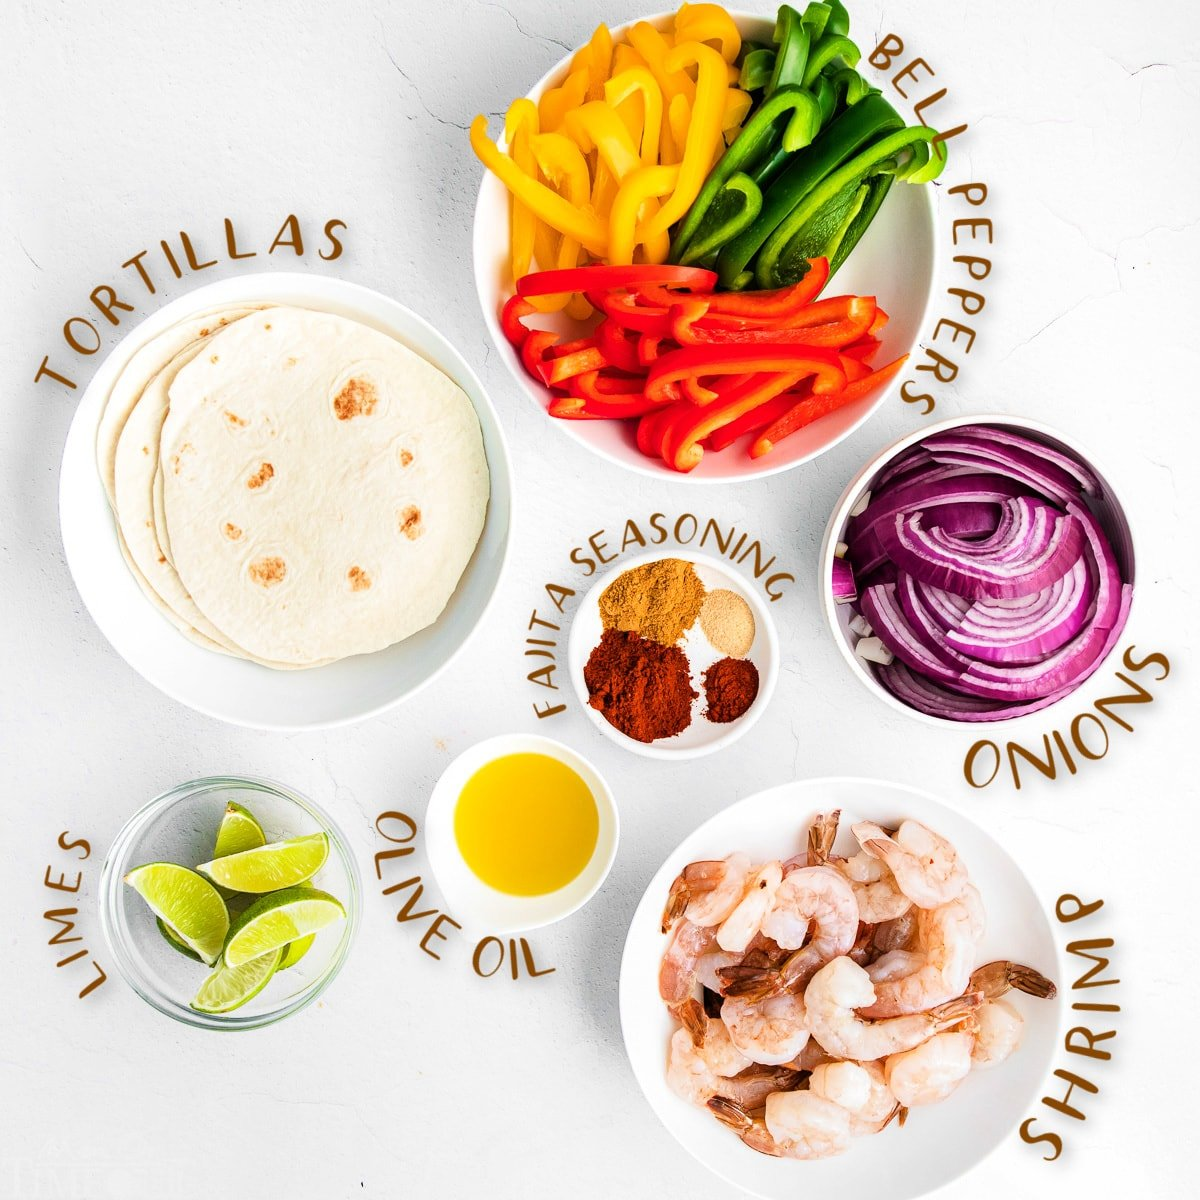 fajita ingredients all measured out in small bowls on white surface.